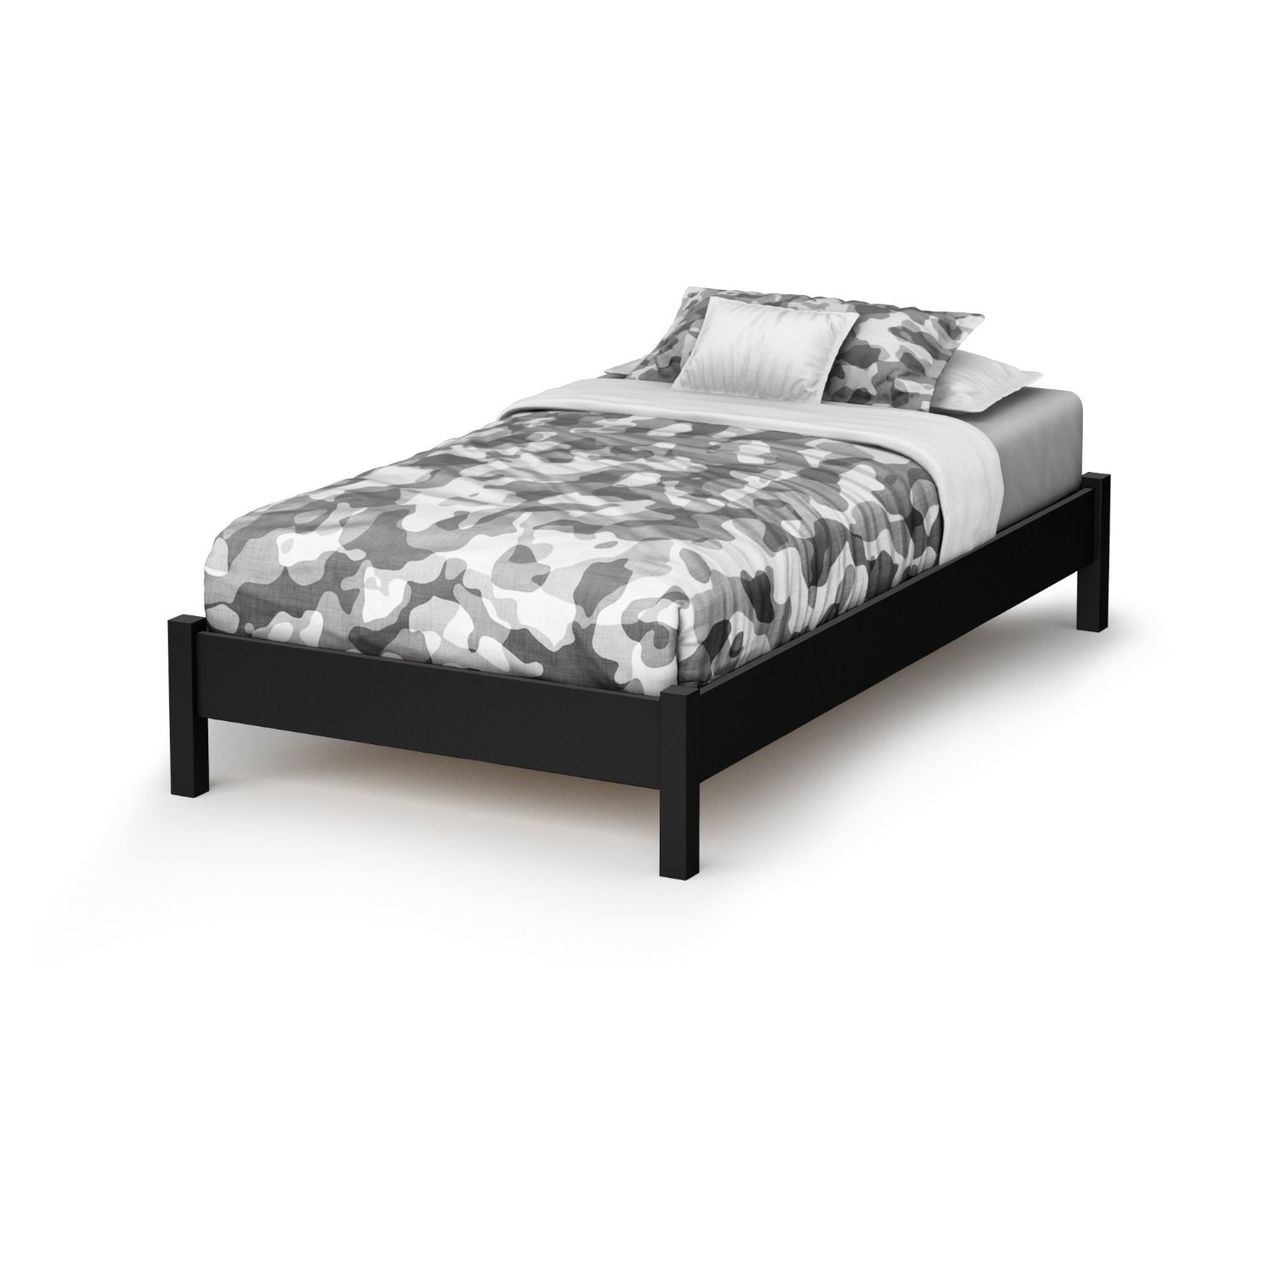 Twin Contemporary Platform Bed Frame In Black Wood Finish Twin